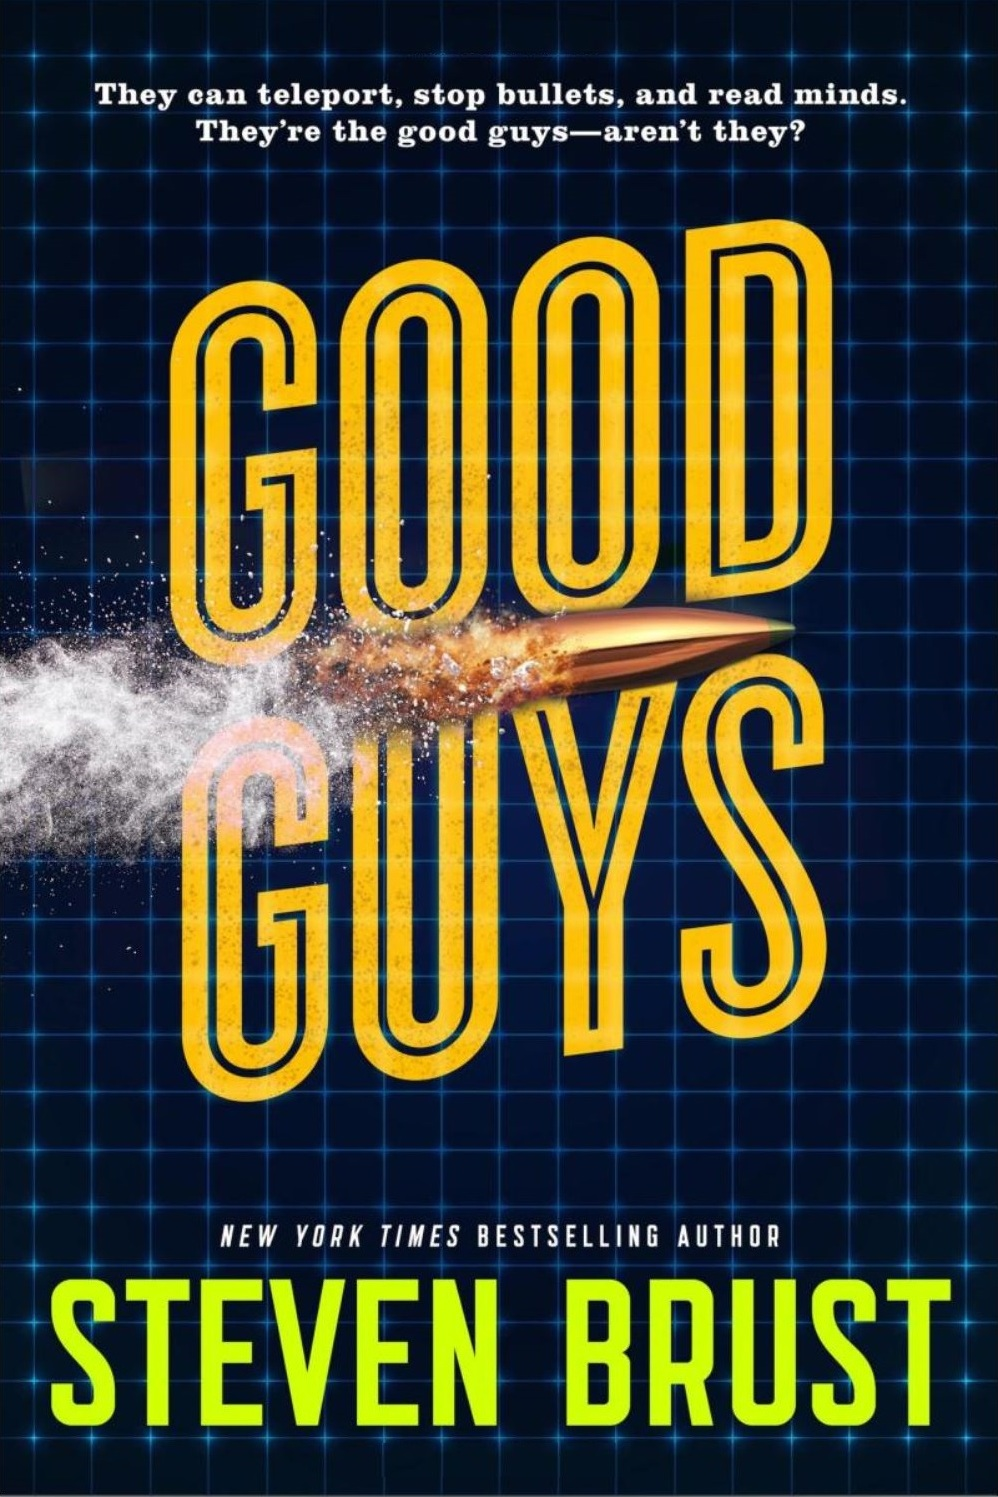 Good Guys - Steven Brust